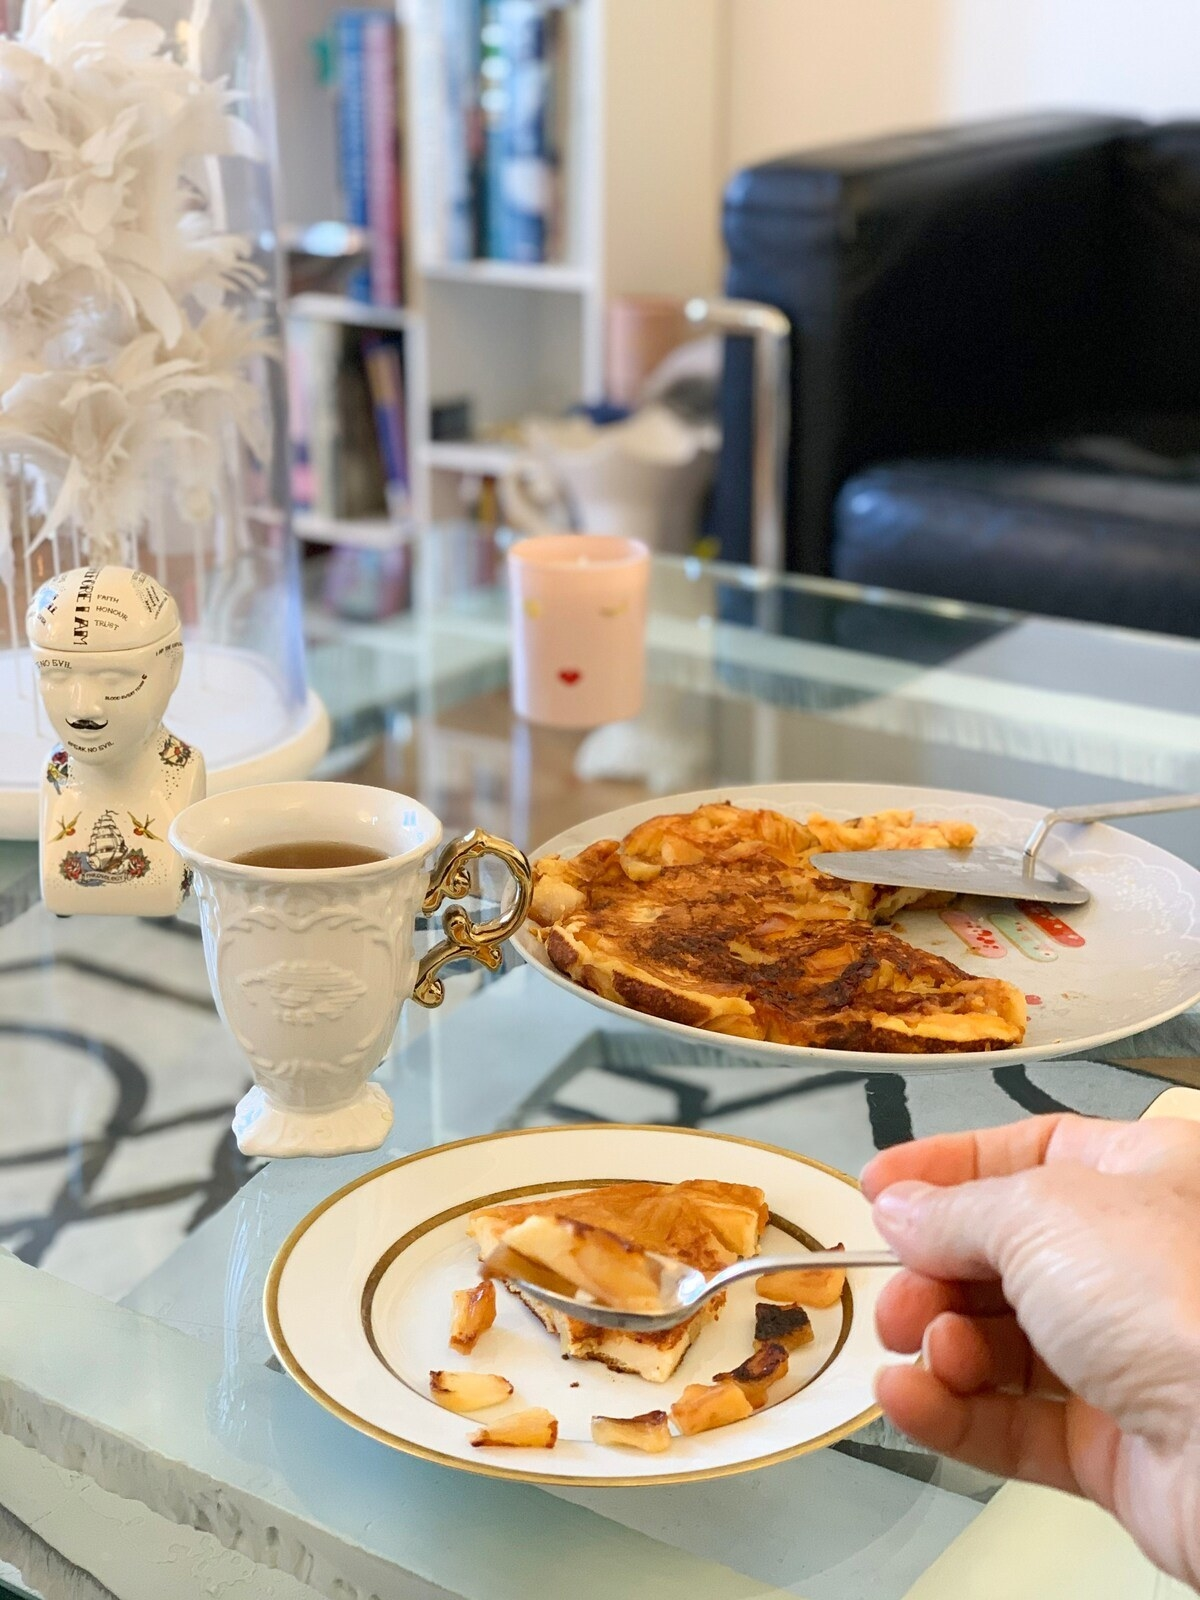 a slice of apple crêpe on fine china next to a cup of tea